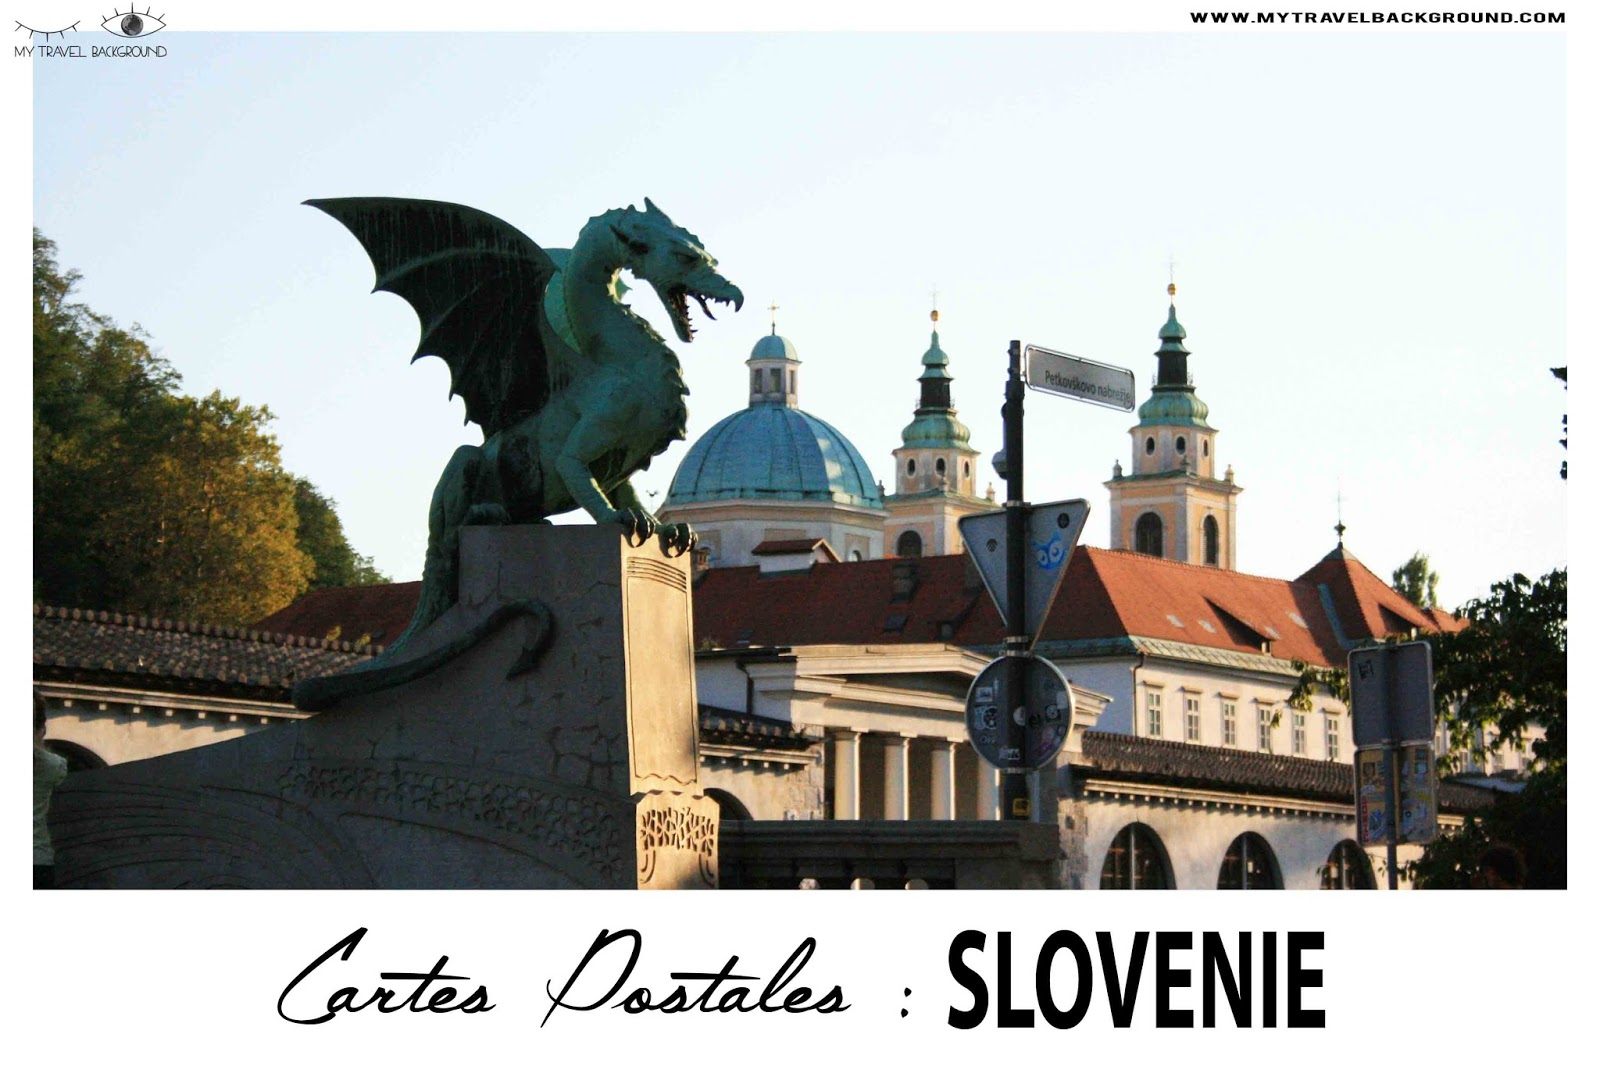 My Travel Background : cartes postales de Slovénie